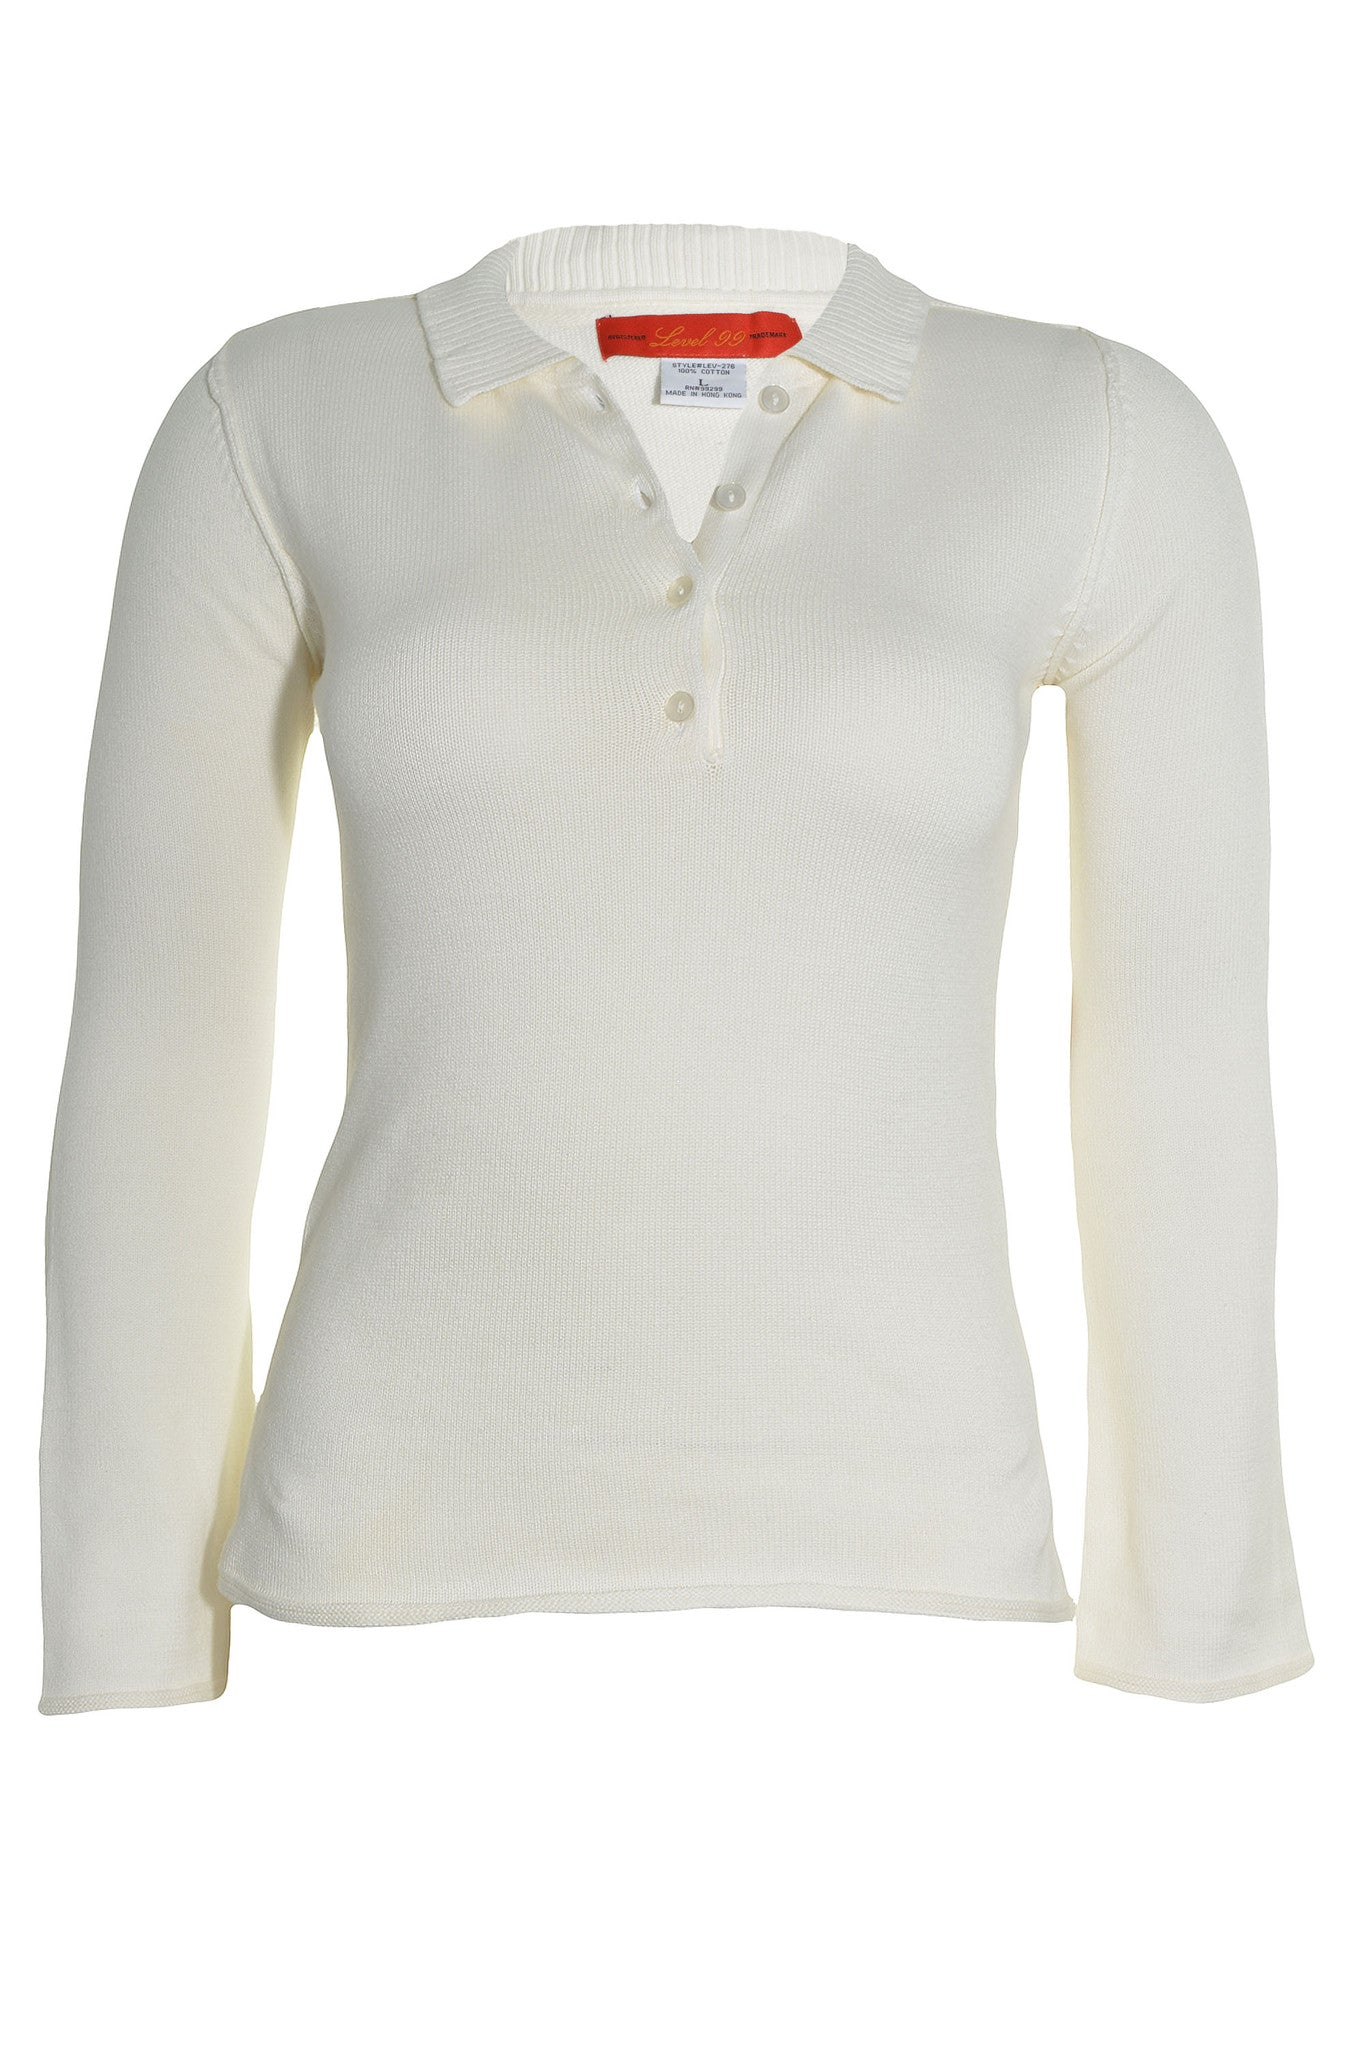 Level 99 Womens Collared Pullover Knit  Polo Sweater | Off-White